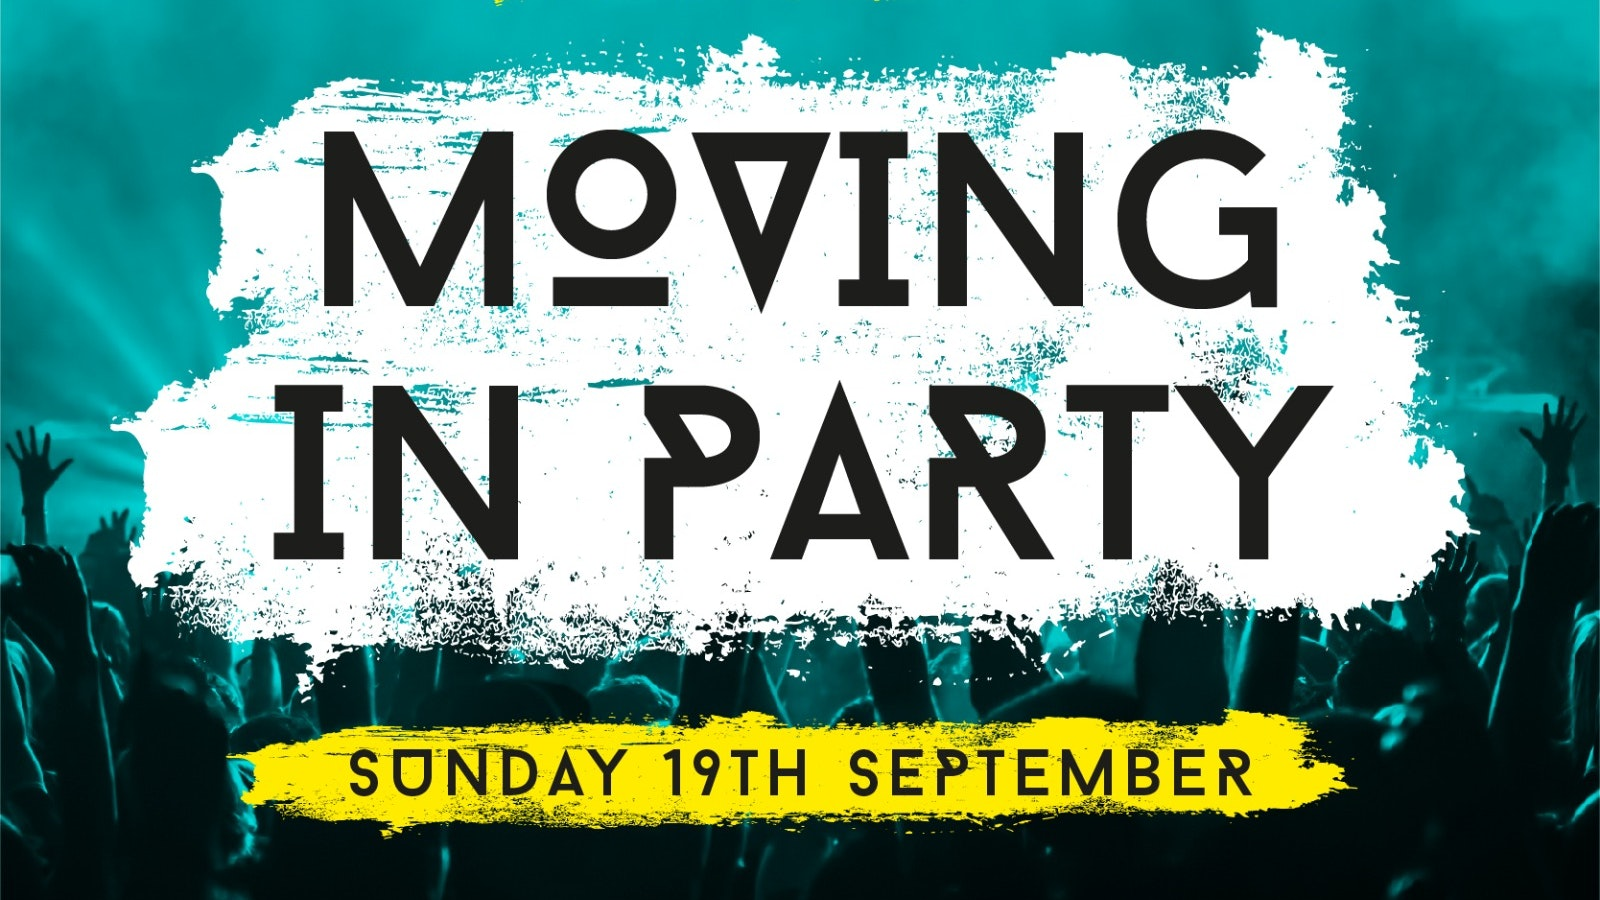 Moving In Party – Sunday 19th September